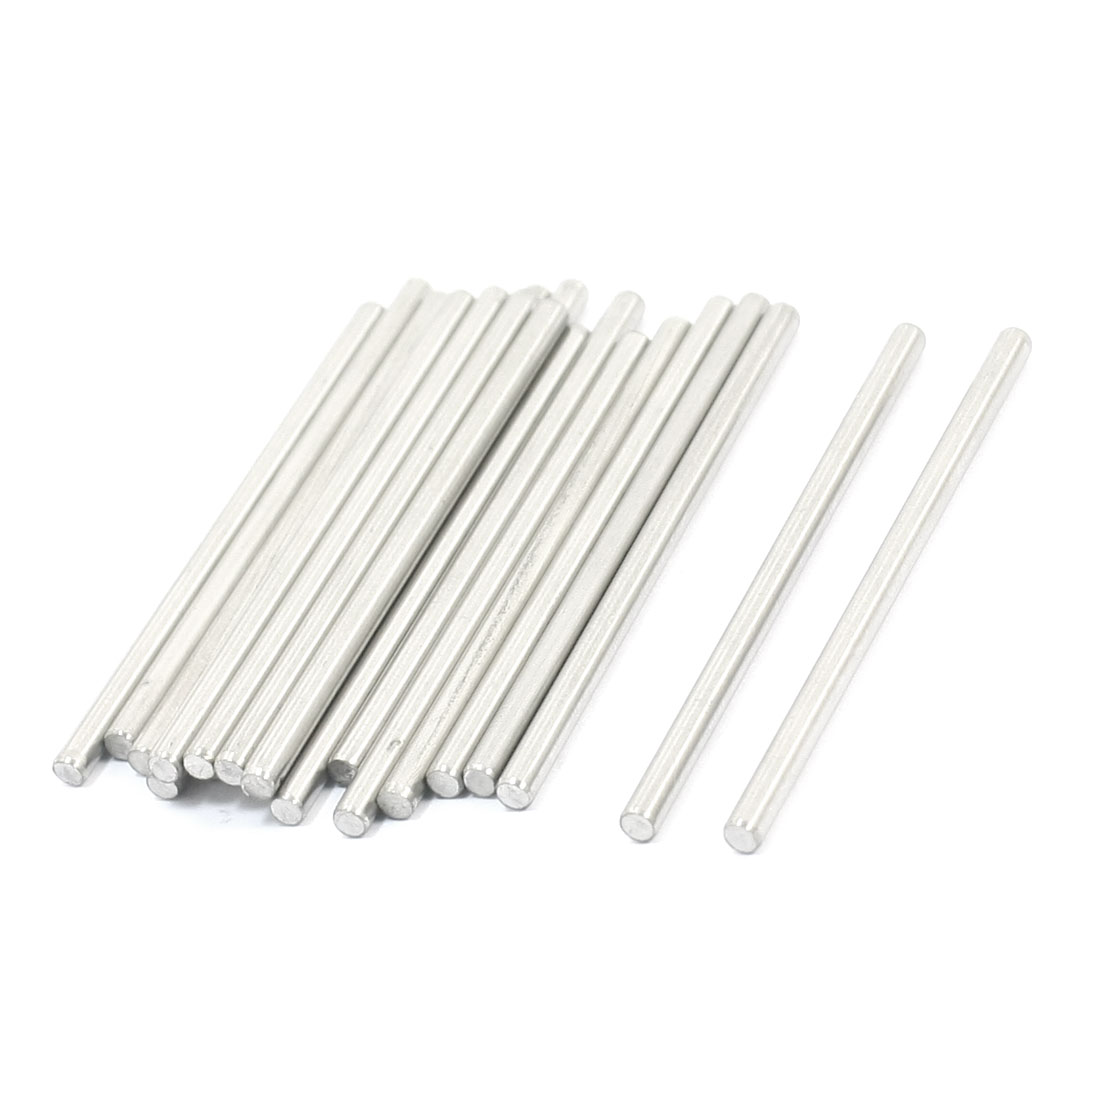 20 Pcs RC Toy Car Model Part Stainless Steel Round Rods Axles 3mm x 60mm